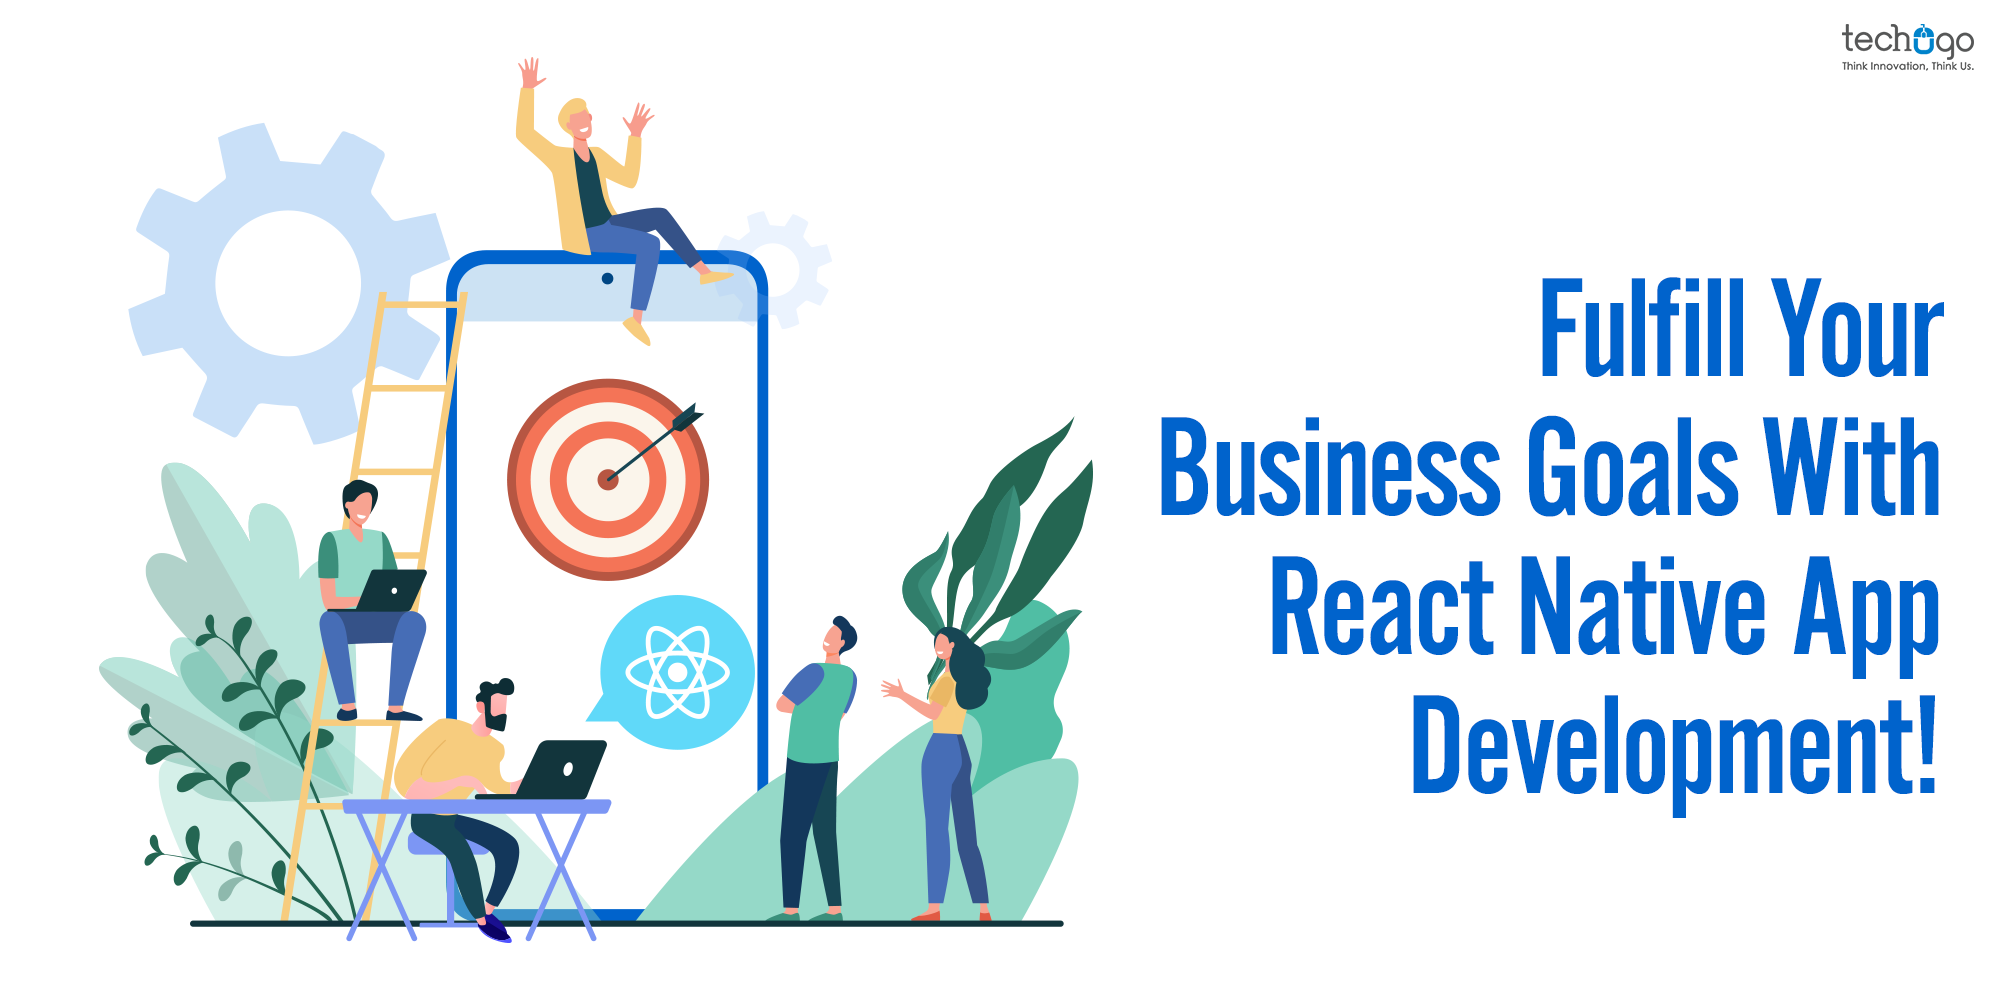 Fulfill Your Business Goals With React Native App Development!